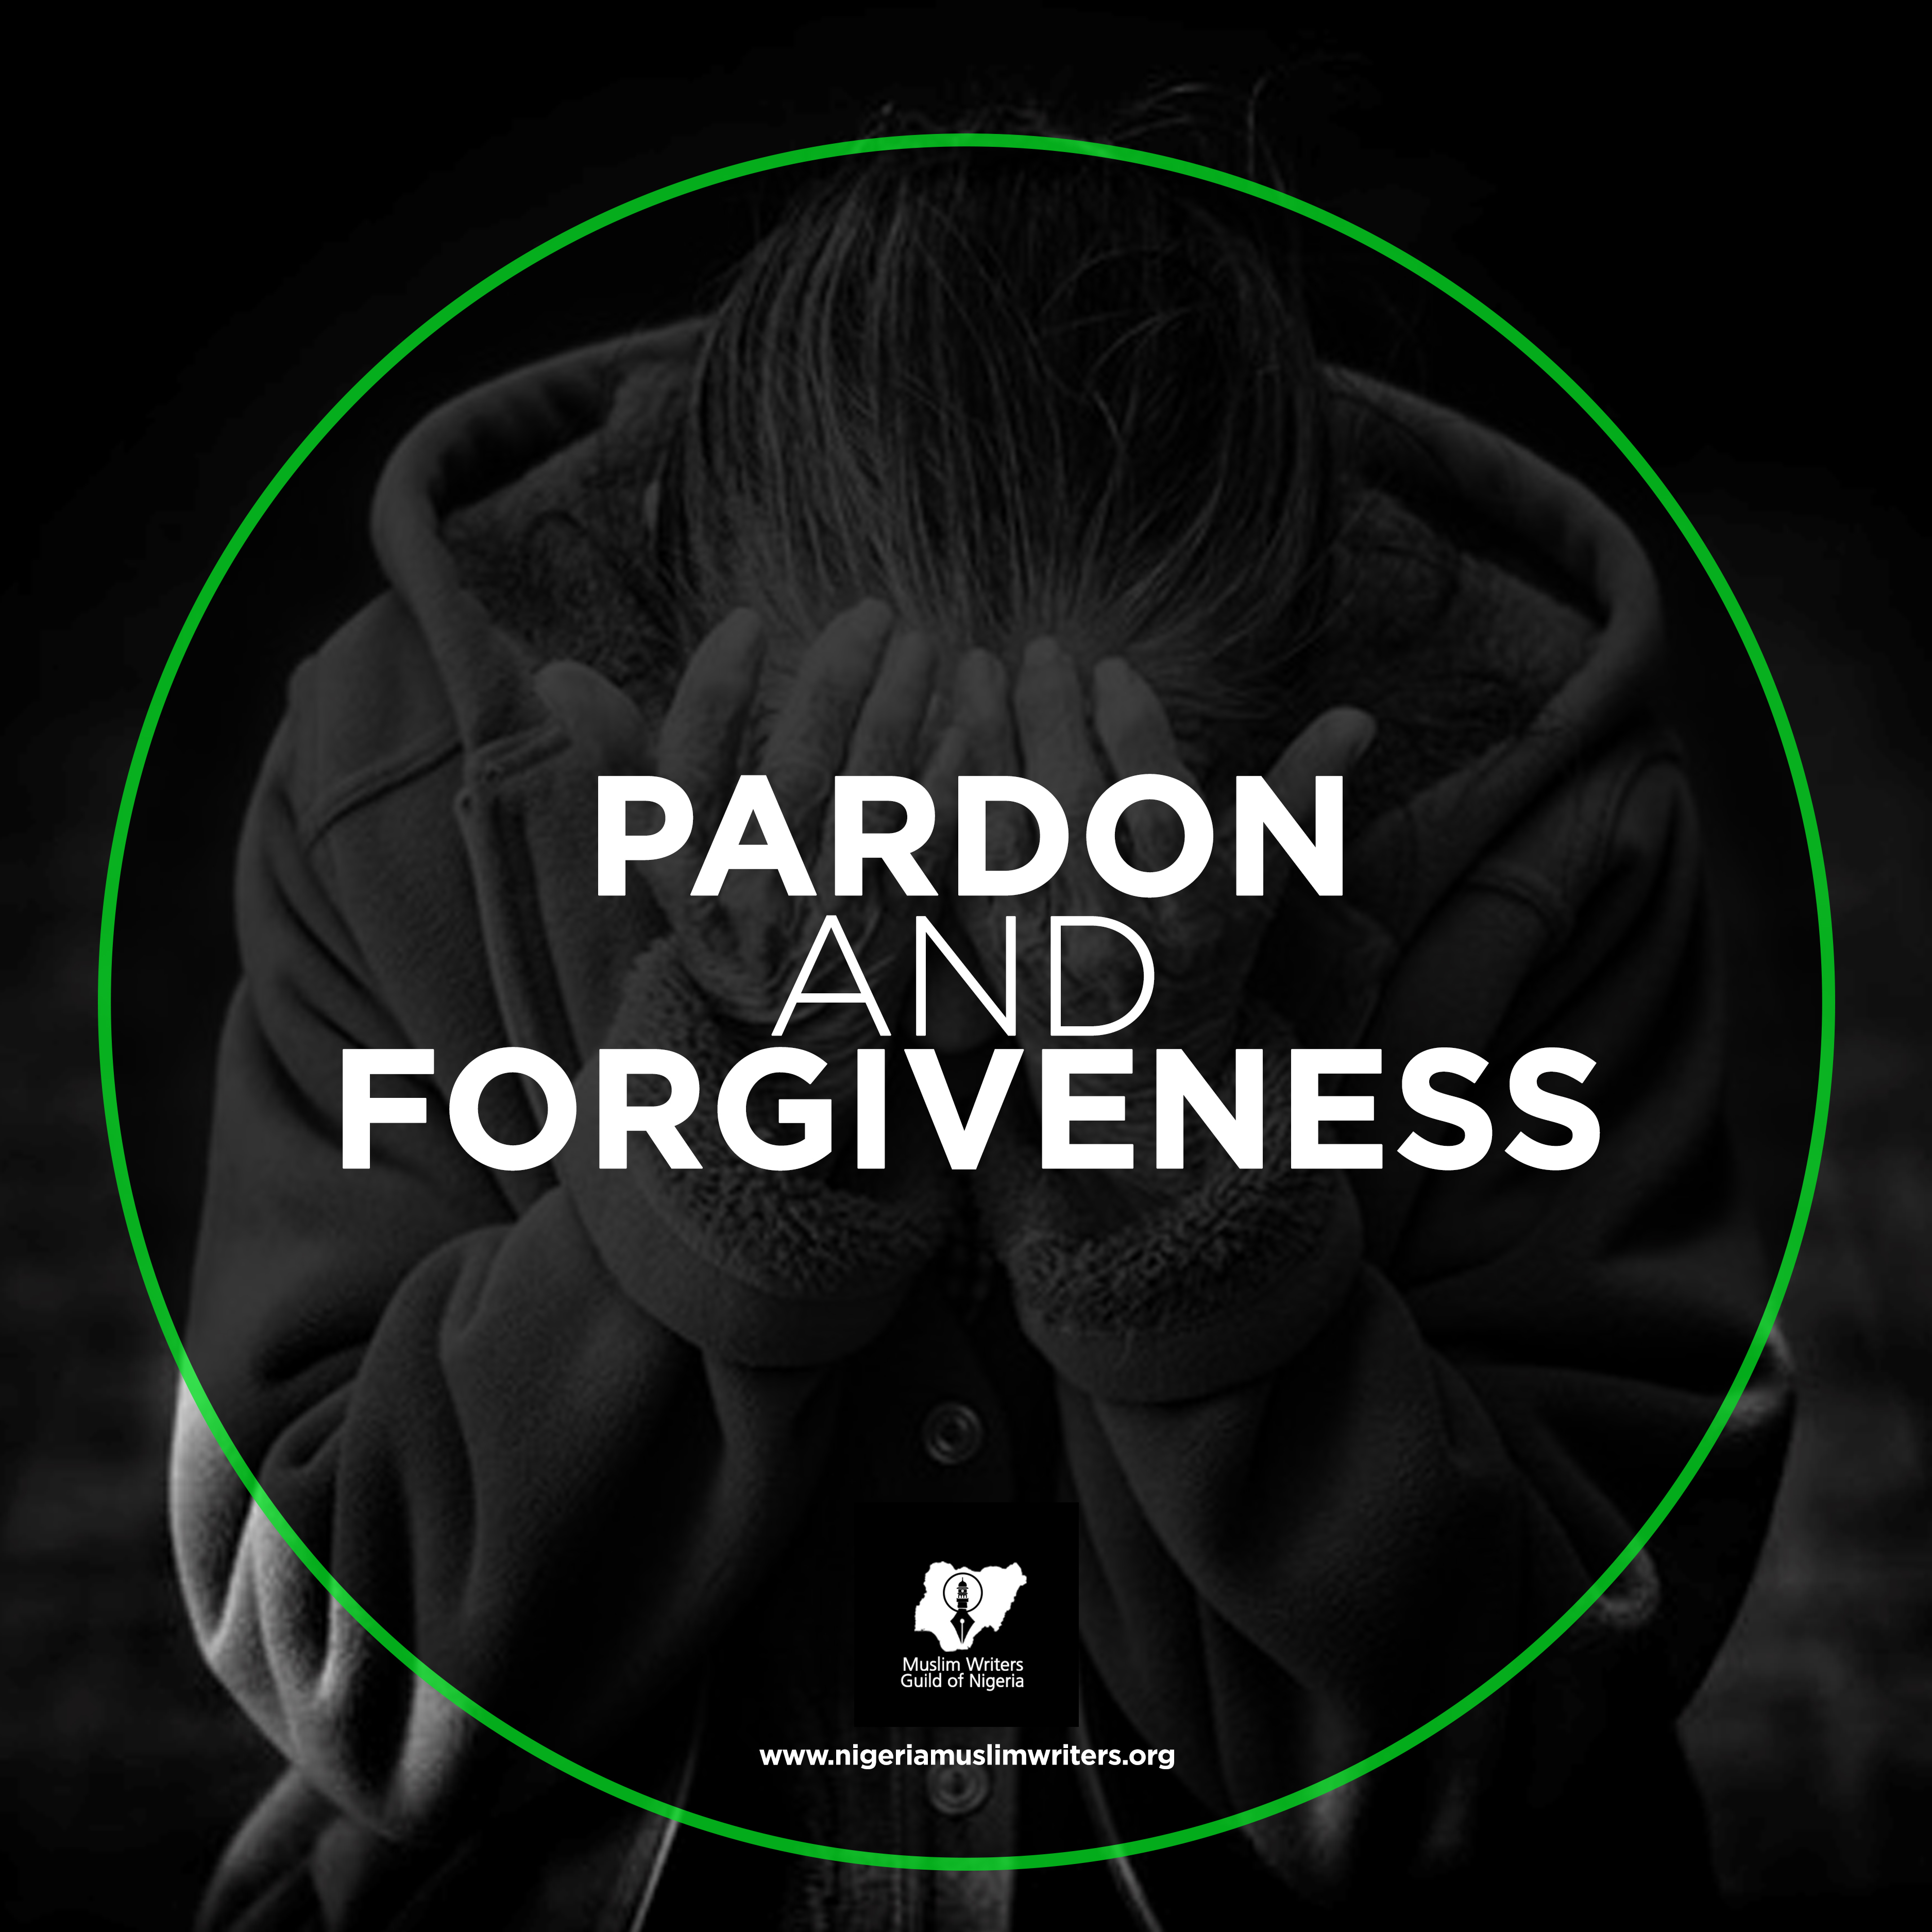 PARDON AND FORGIVENESS